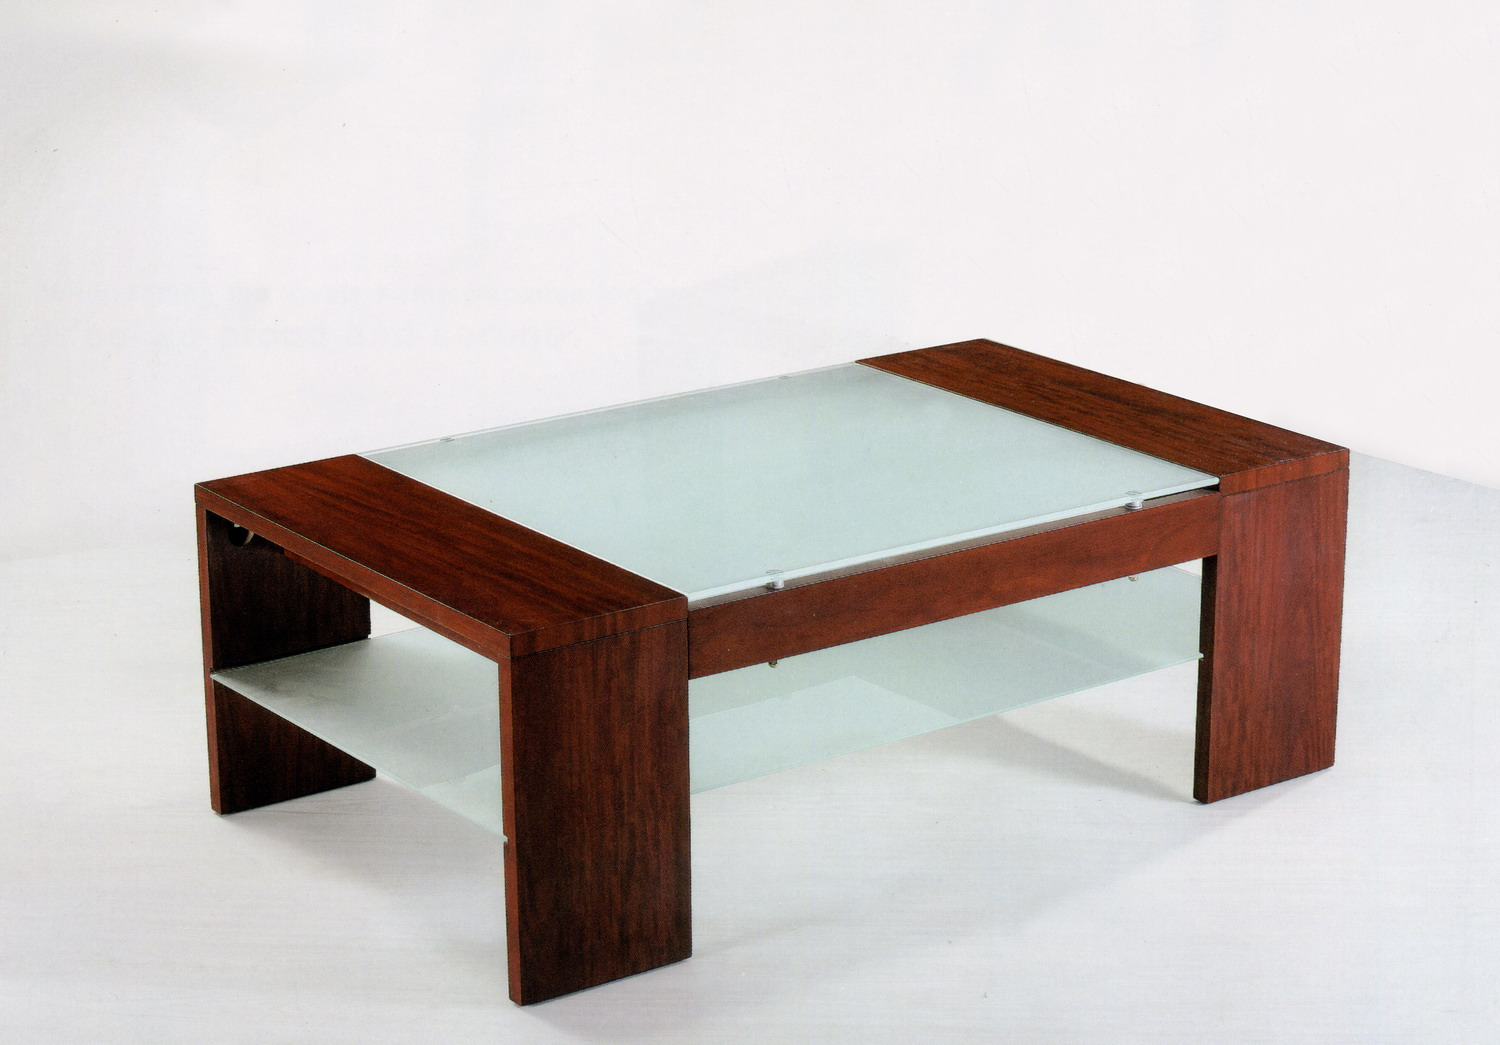 Glass And Wood Coffee Table Coffee Table Glass And Wood Will Bring You An Atmosphere Of Calmness And Control (Image 3 of 10)